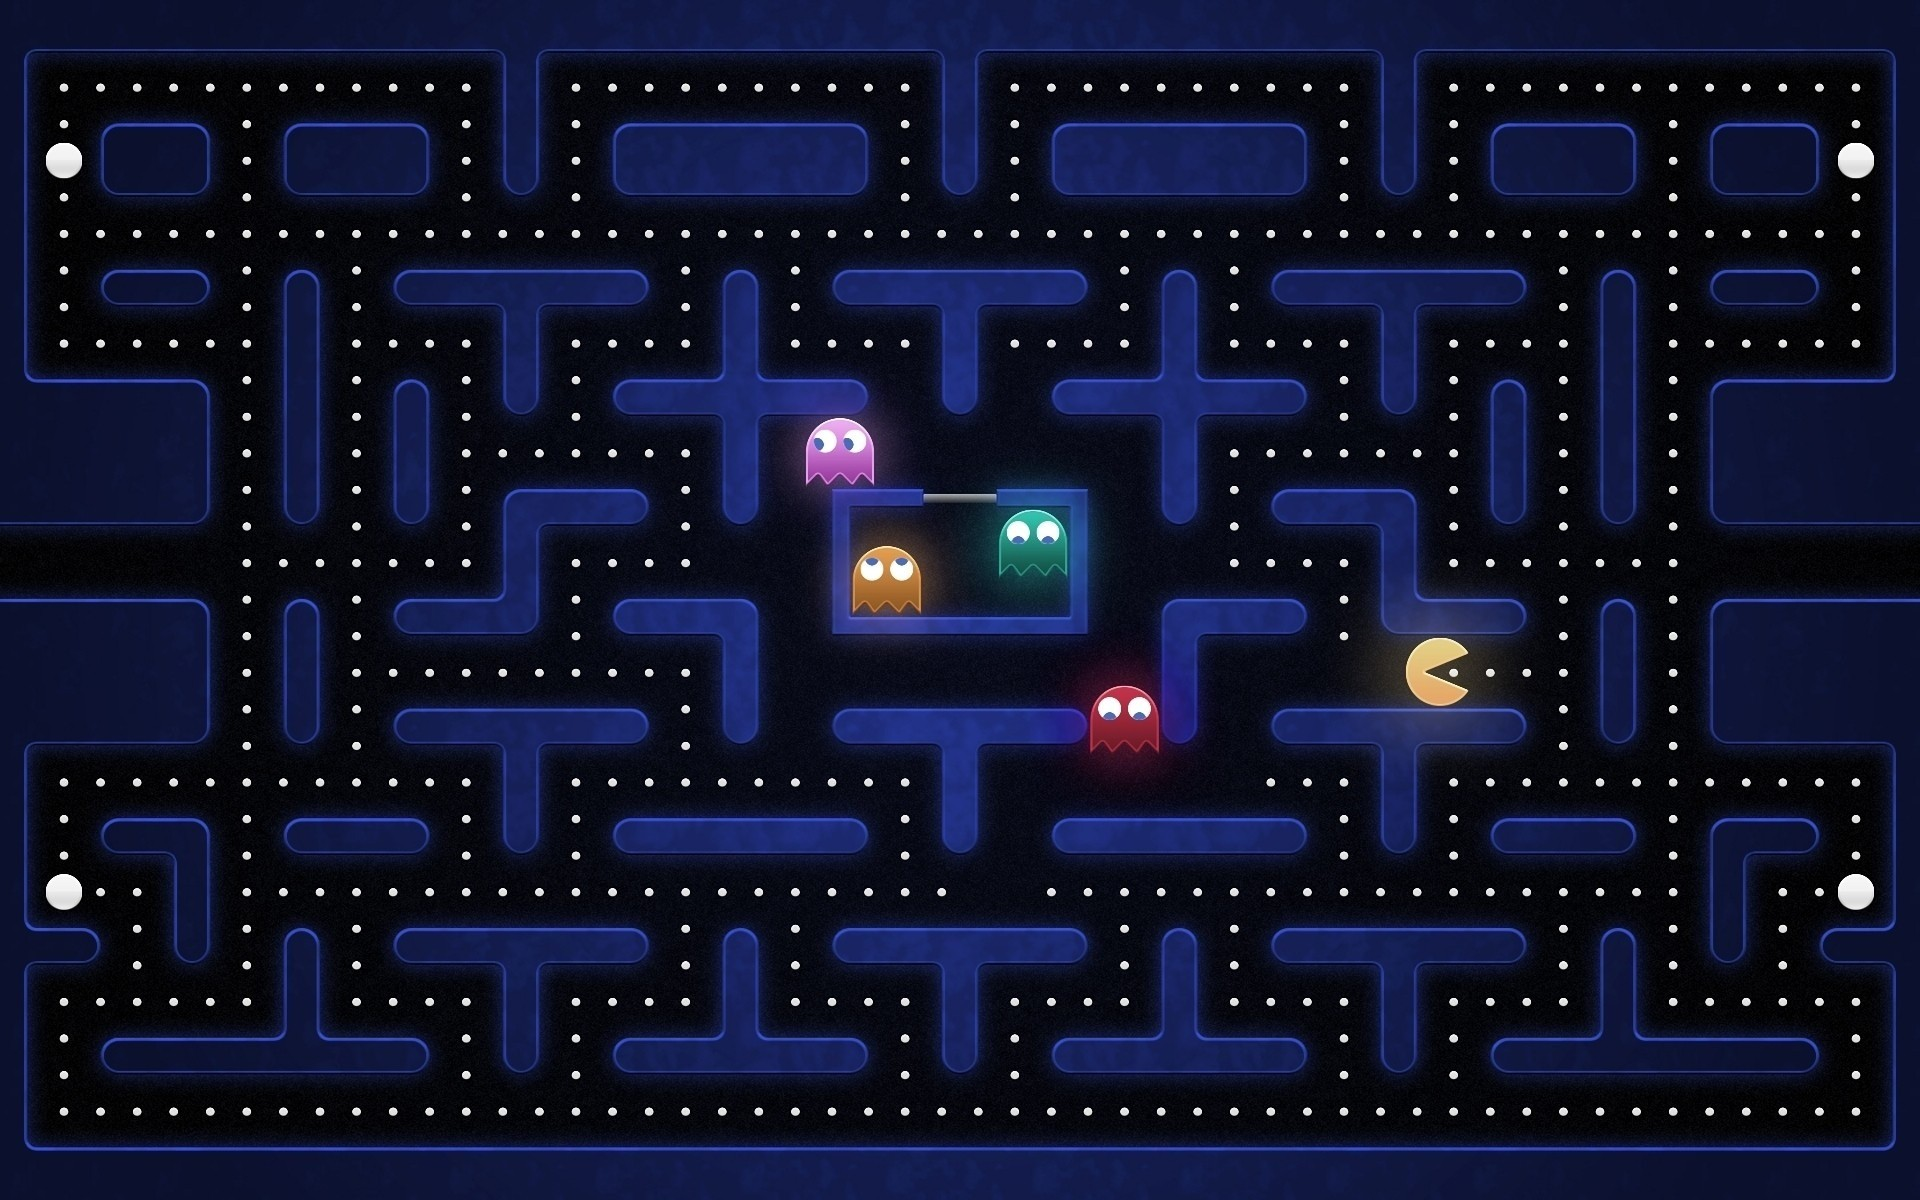 1920x1200 Pacman Wallpapers - Pacman desktop wallpapers - 124 and wallpapers